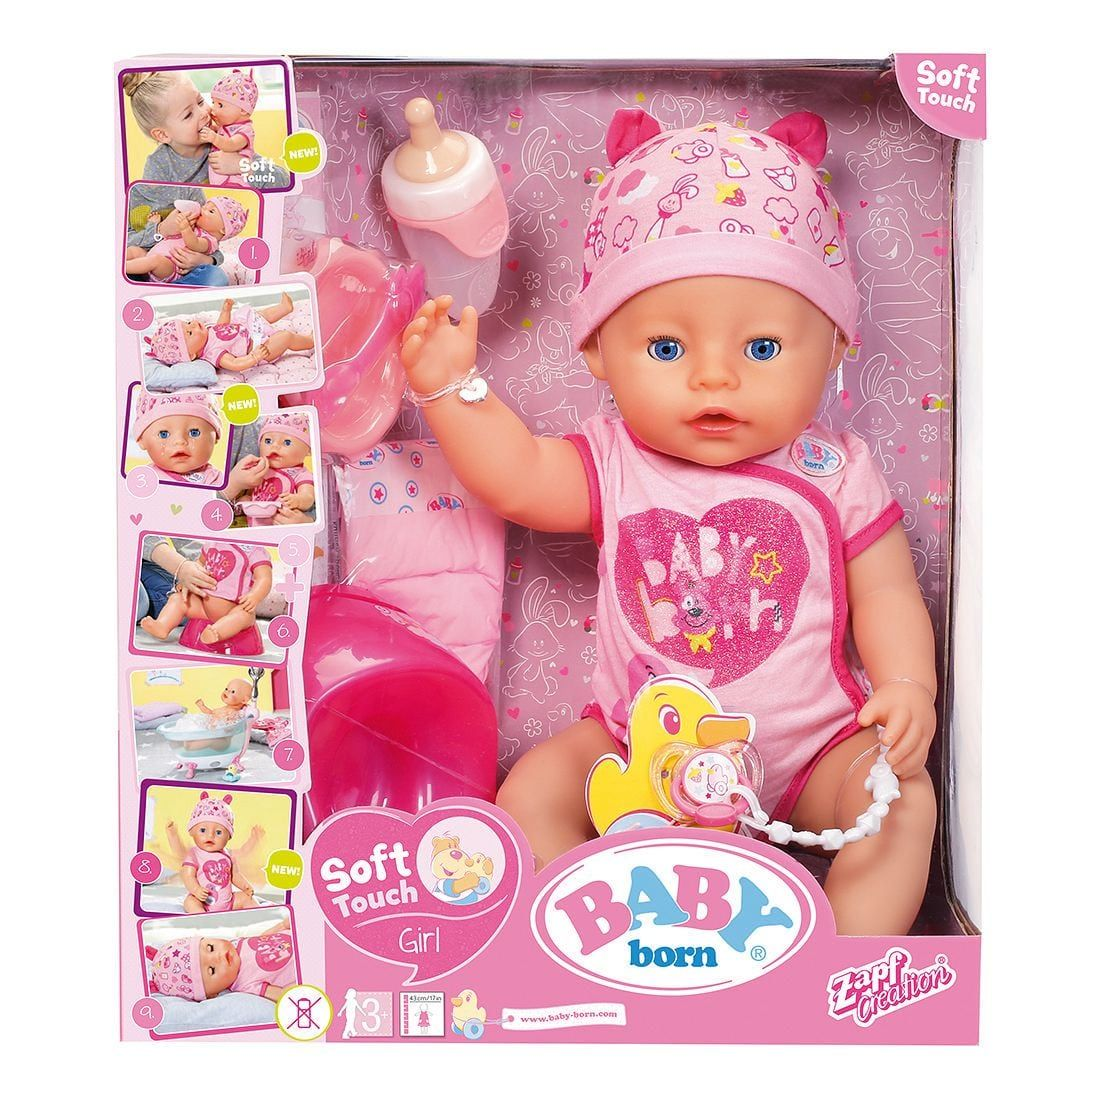 Baby Doll Images